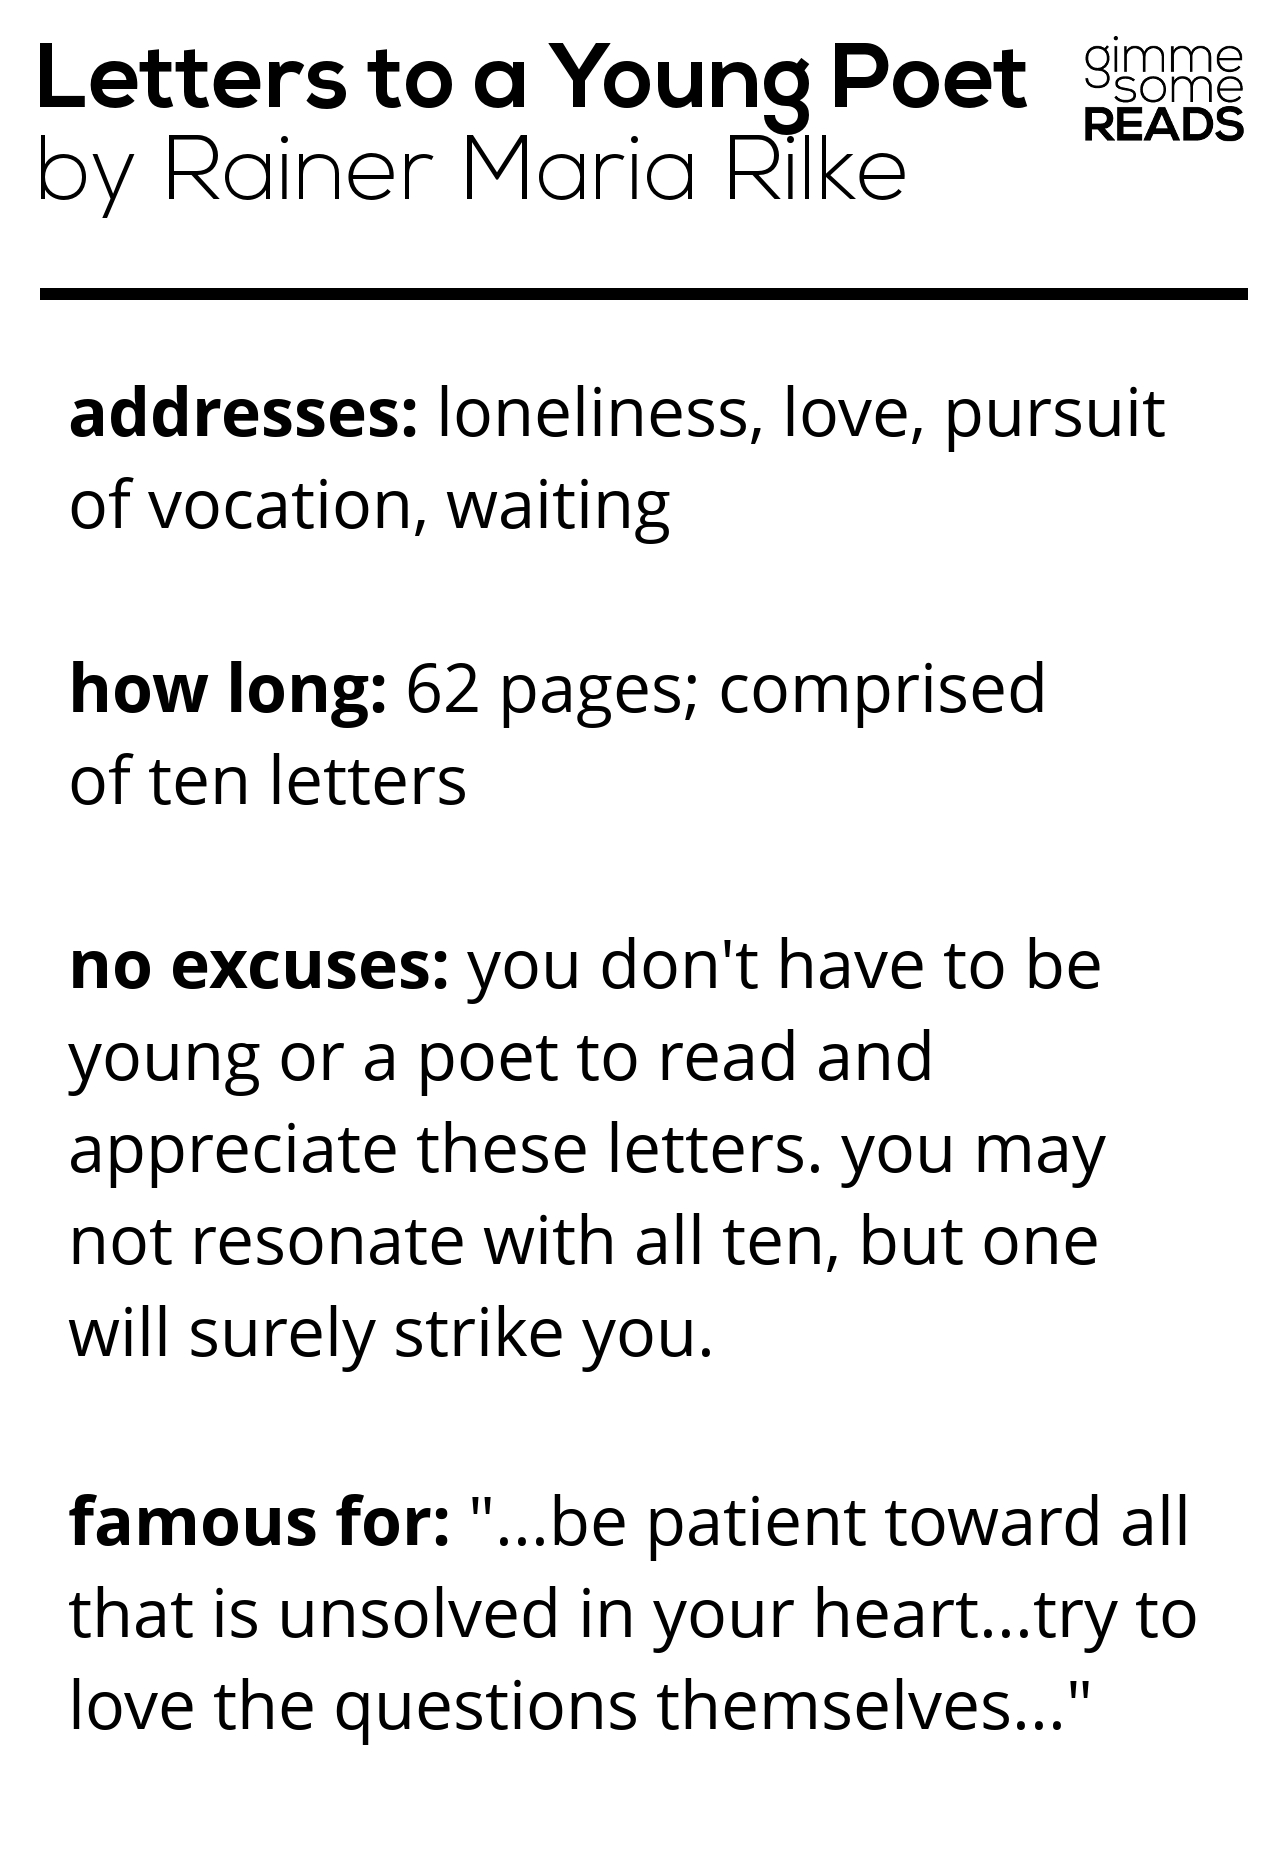 quick read: Letters to a Young Poet #Rilke   gimmesomereads.com